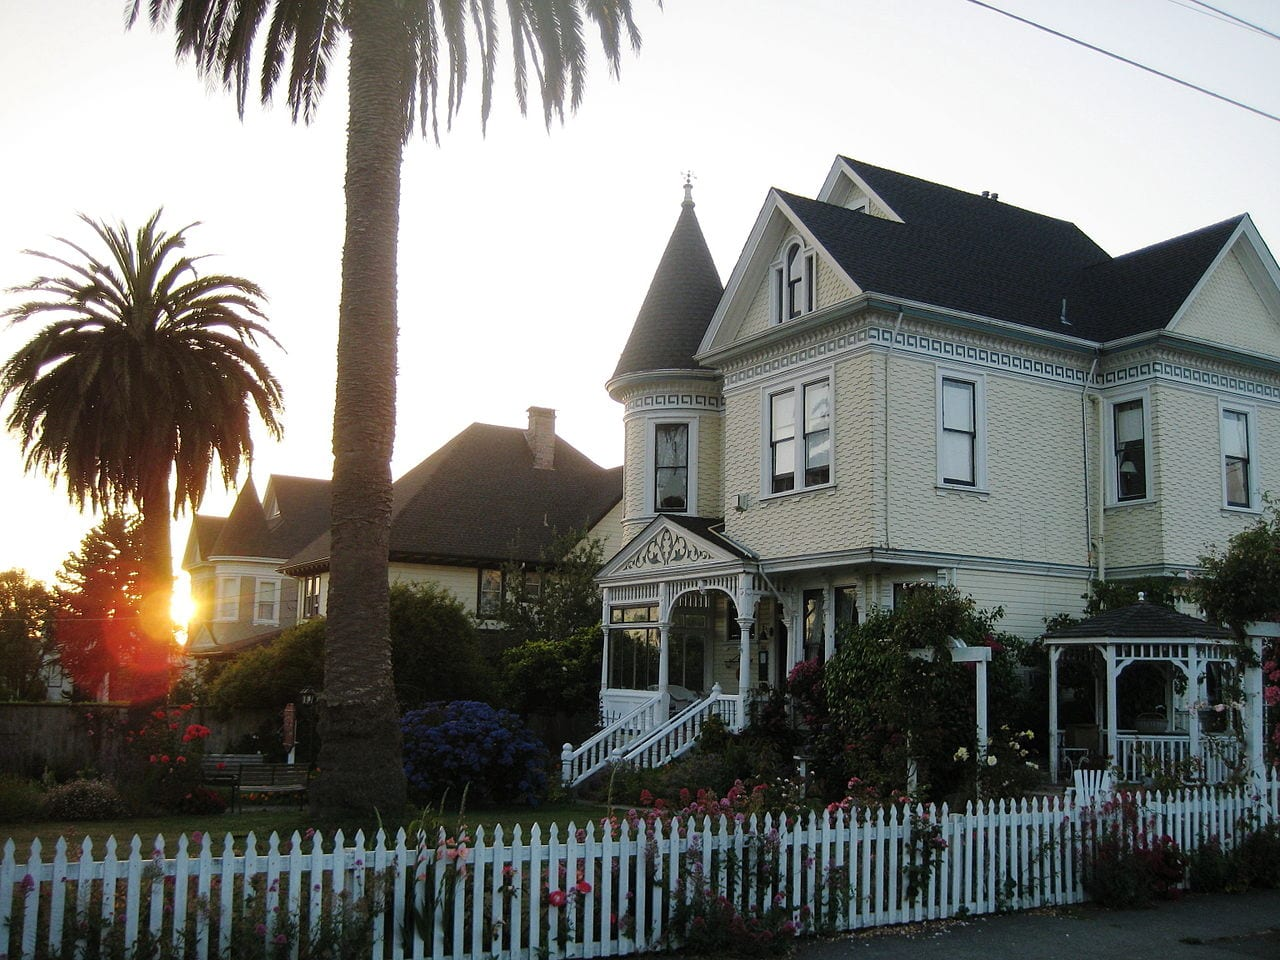 Victorian architecture in Arcata